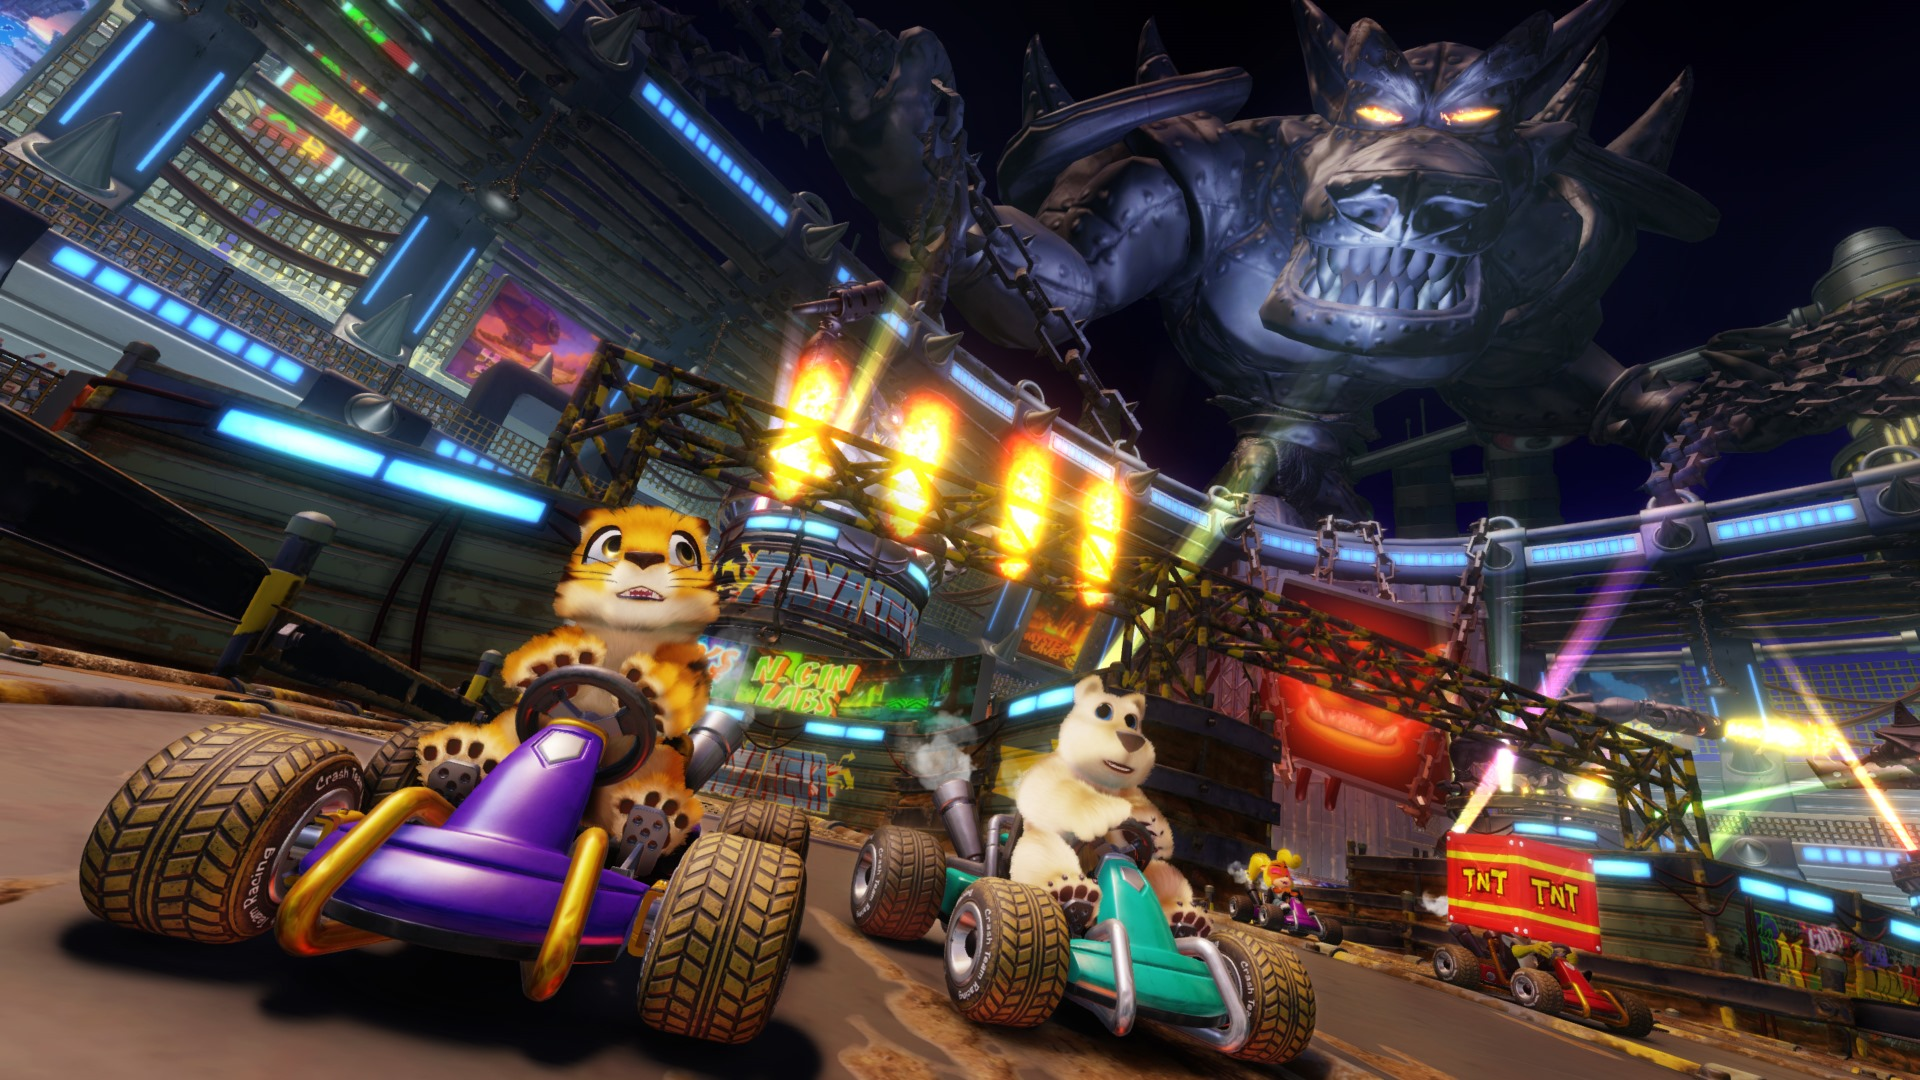 Activision, arcade, Beenox, Crash Team Racing: Nitro-Fueled, Crash Team Racing: Nitro-Fueled Review, Driving, PS4, PS4 Review, Racing, Rating 8/10, SEGA